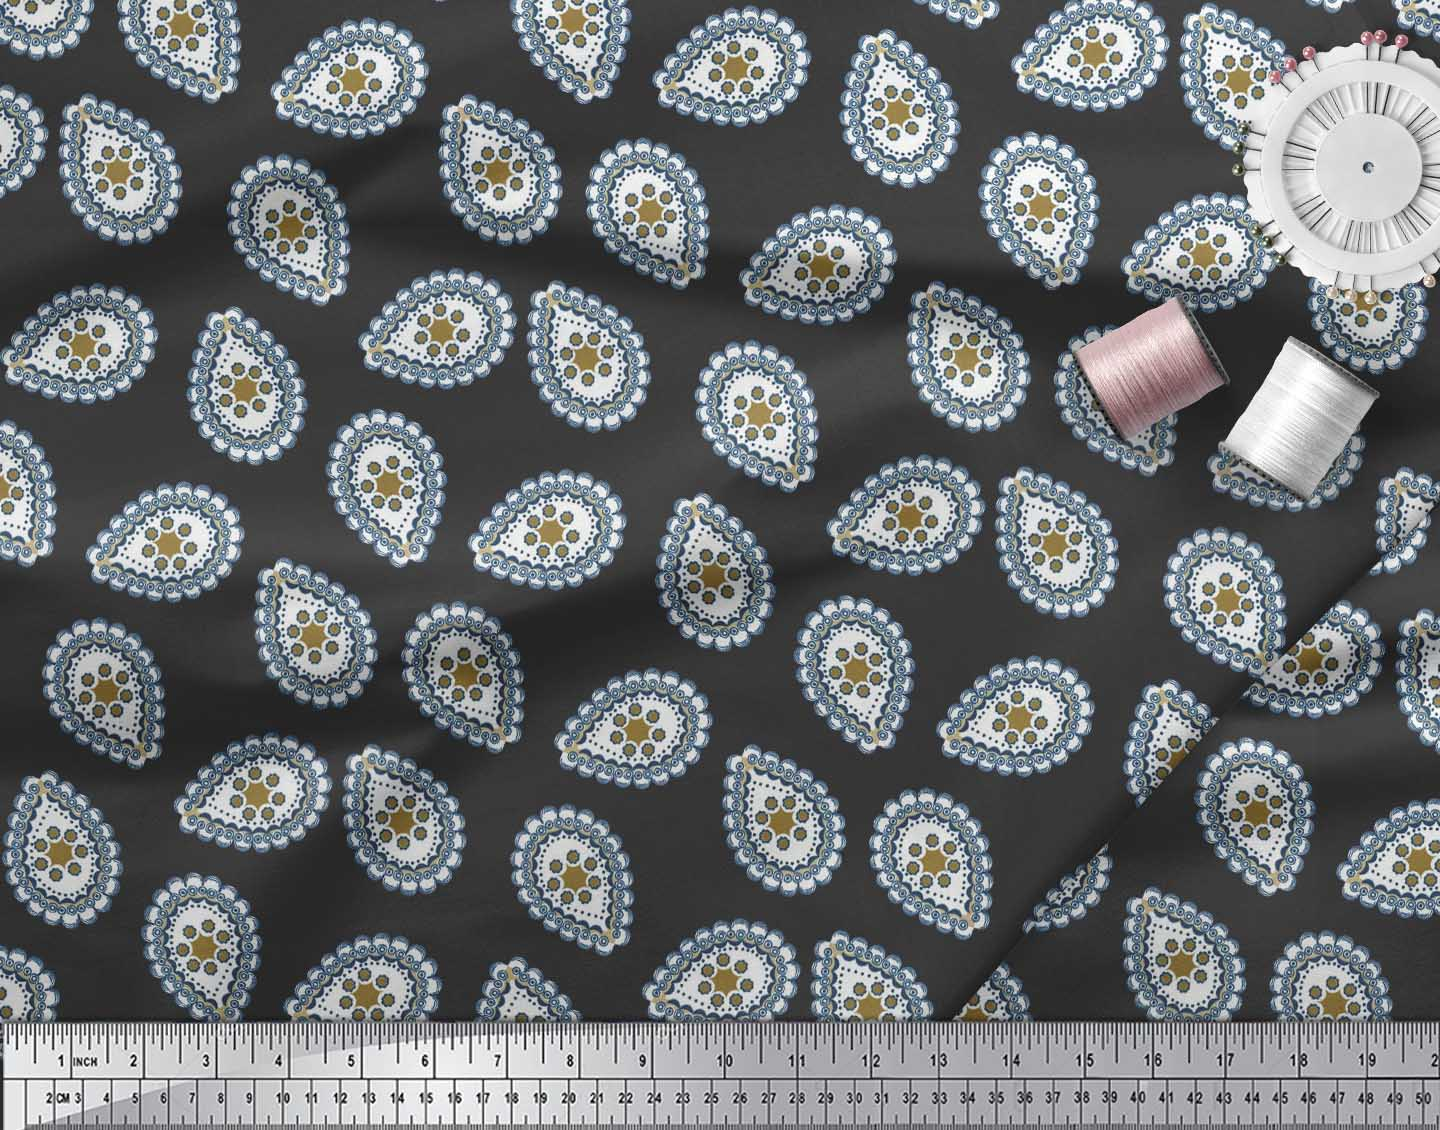 Soimoi-Cotton-Poplin-Fabric-Abstracts-Abstract-Print-Fabric-by-the-Vj2 thumbnail 3